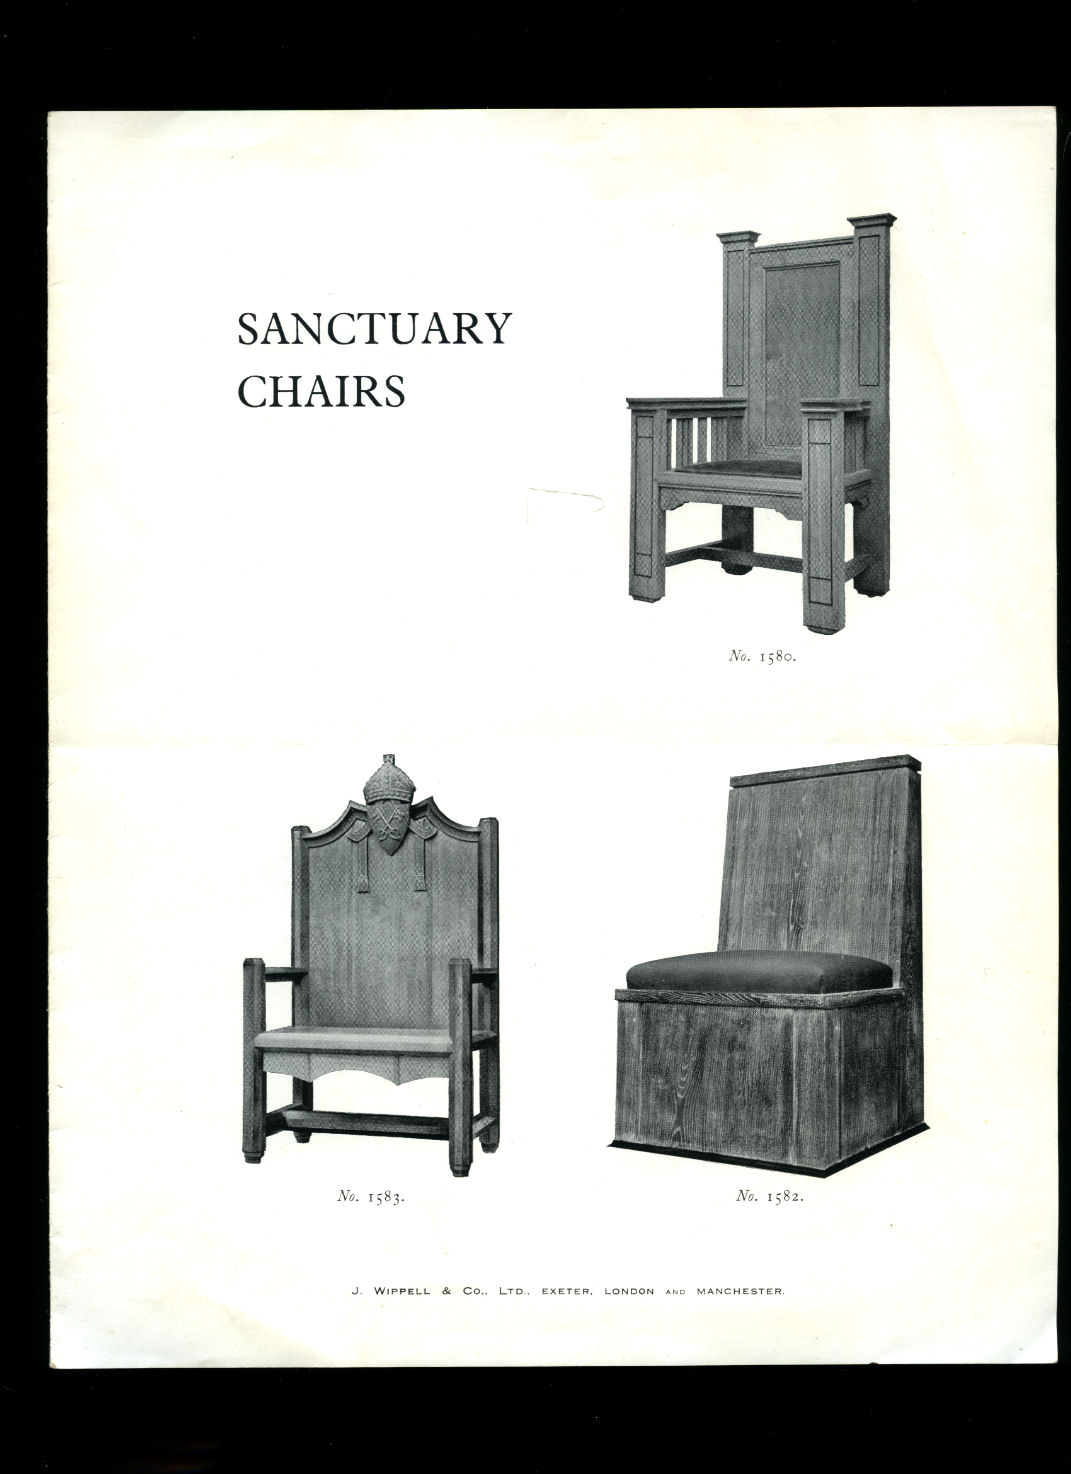 J. WIPPELL & CO. LTD., EXETER, LONDON AND MANCHESTER - Church Furniture   Original Plans, Sketches, Proposed Designs and Catalogue for Sanctuary Chairs   Letters   Price Lists   Examples of Work Executed By J. Wippell & Company Ltd., [11 Pieces in Total]